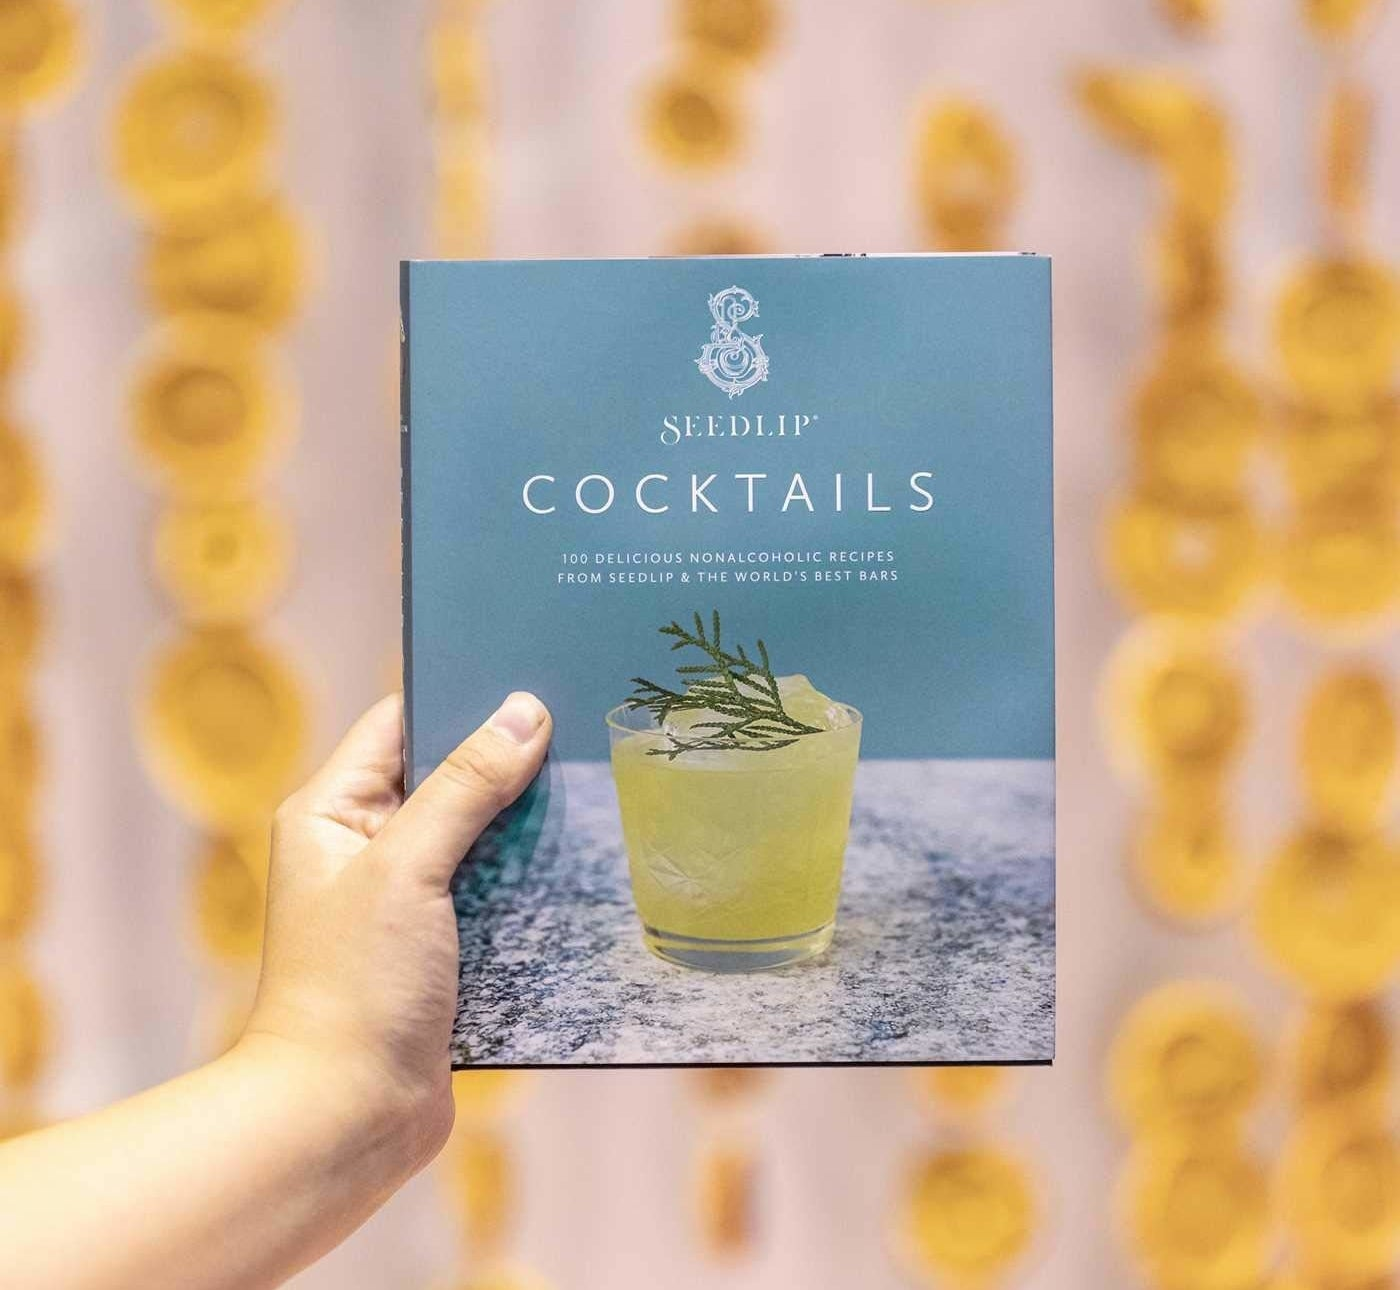 A person holding up a book titled seedlip cocktails